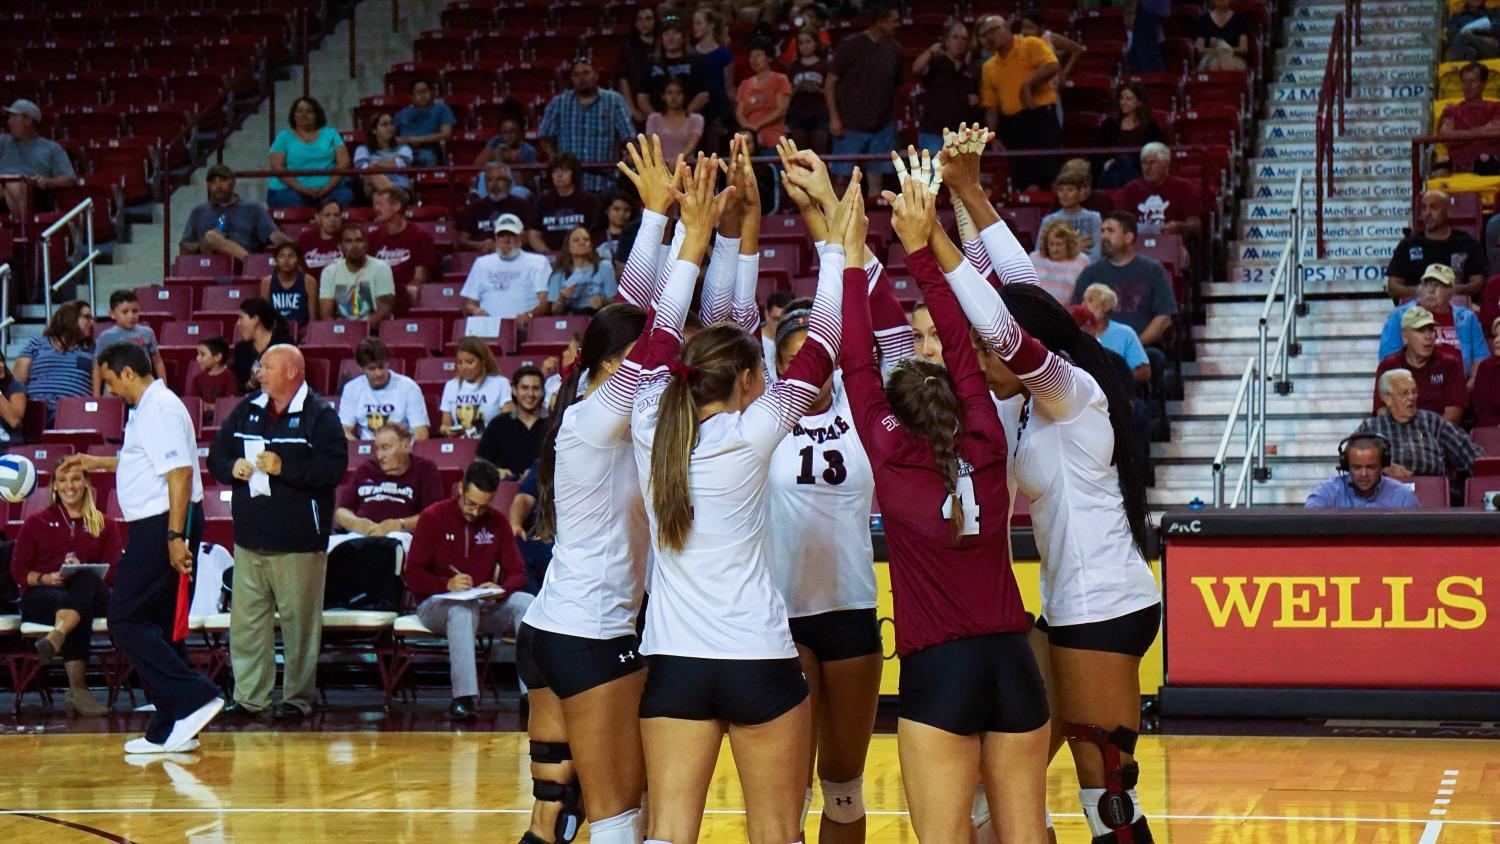 NMSU Volleyball during their game against North Dakota on Thursday in the Pan American Center. The Aggies would drop the match, 3-2.